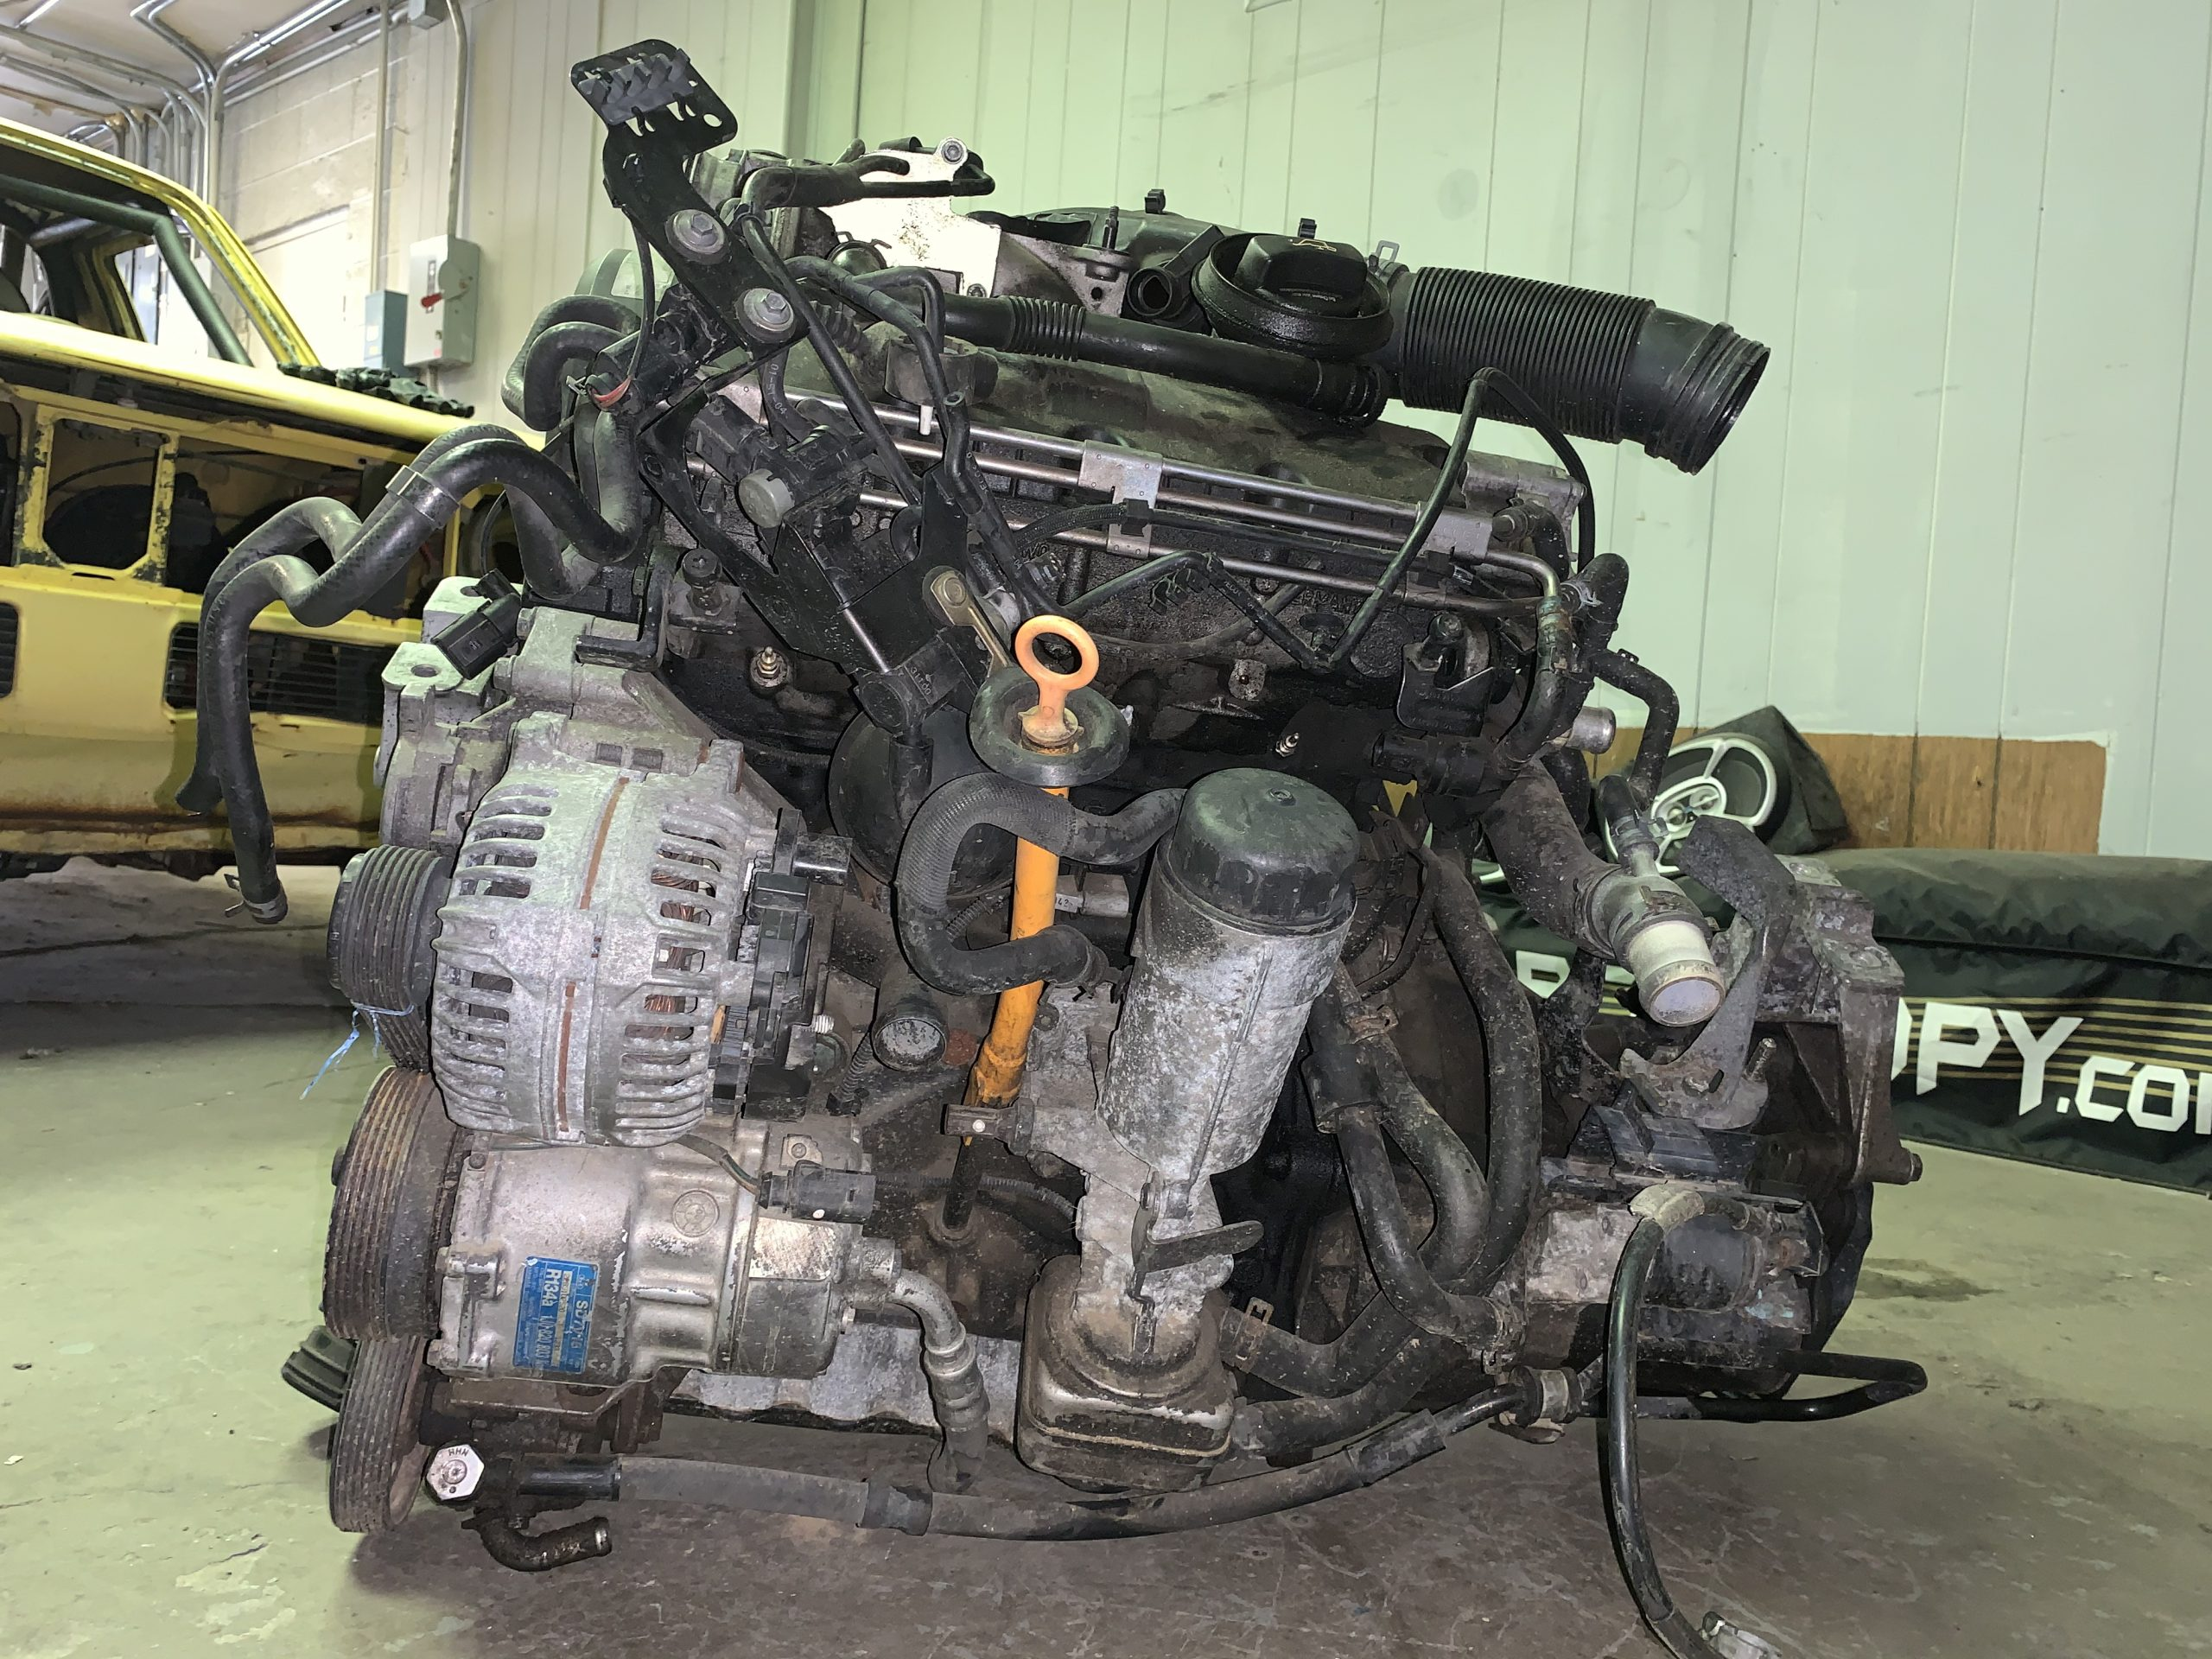 1980 VW Rabbit TDI swap engine May 02, 10 53 58 AM